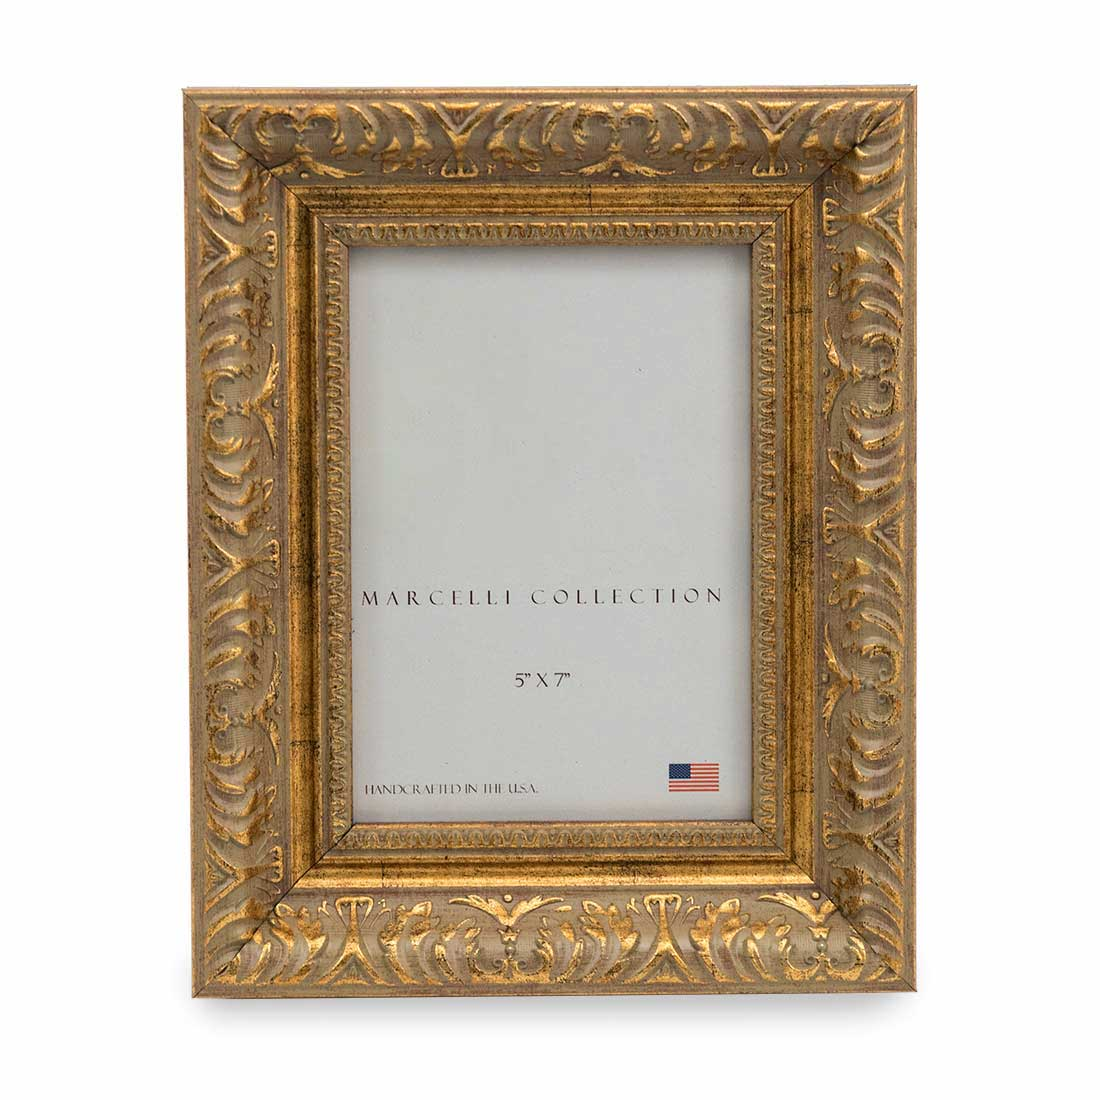 de Young & Legion of Honor Museum Stores | Gold Feathers 5x7 Frame